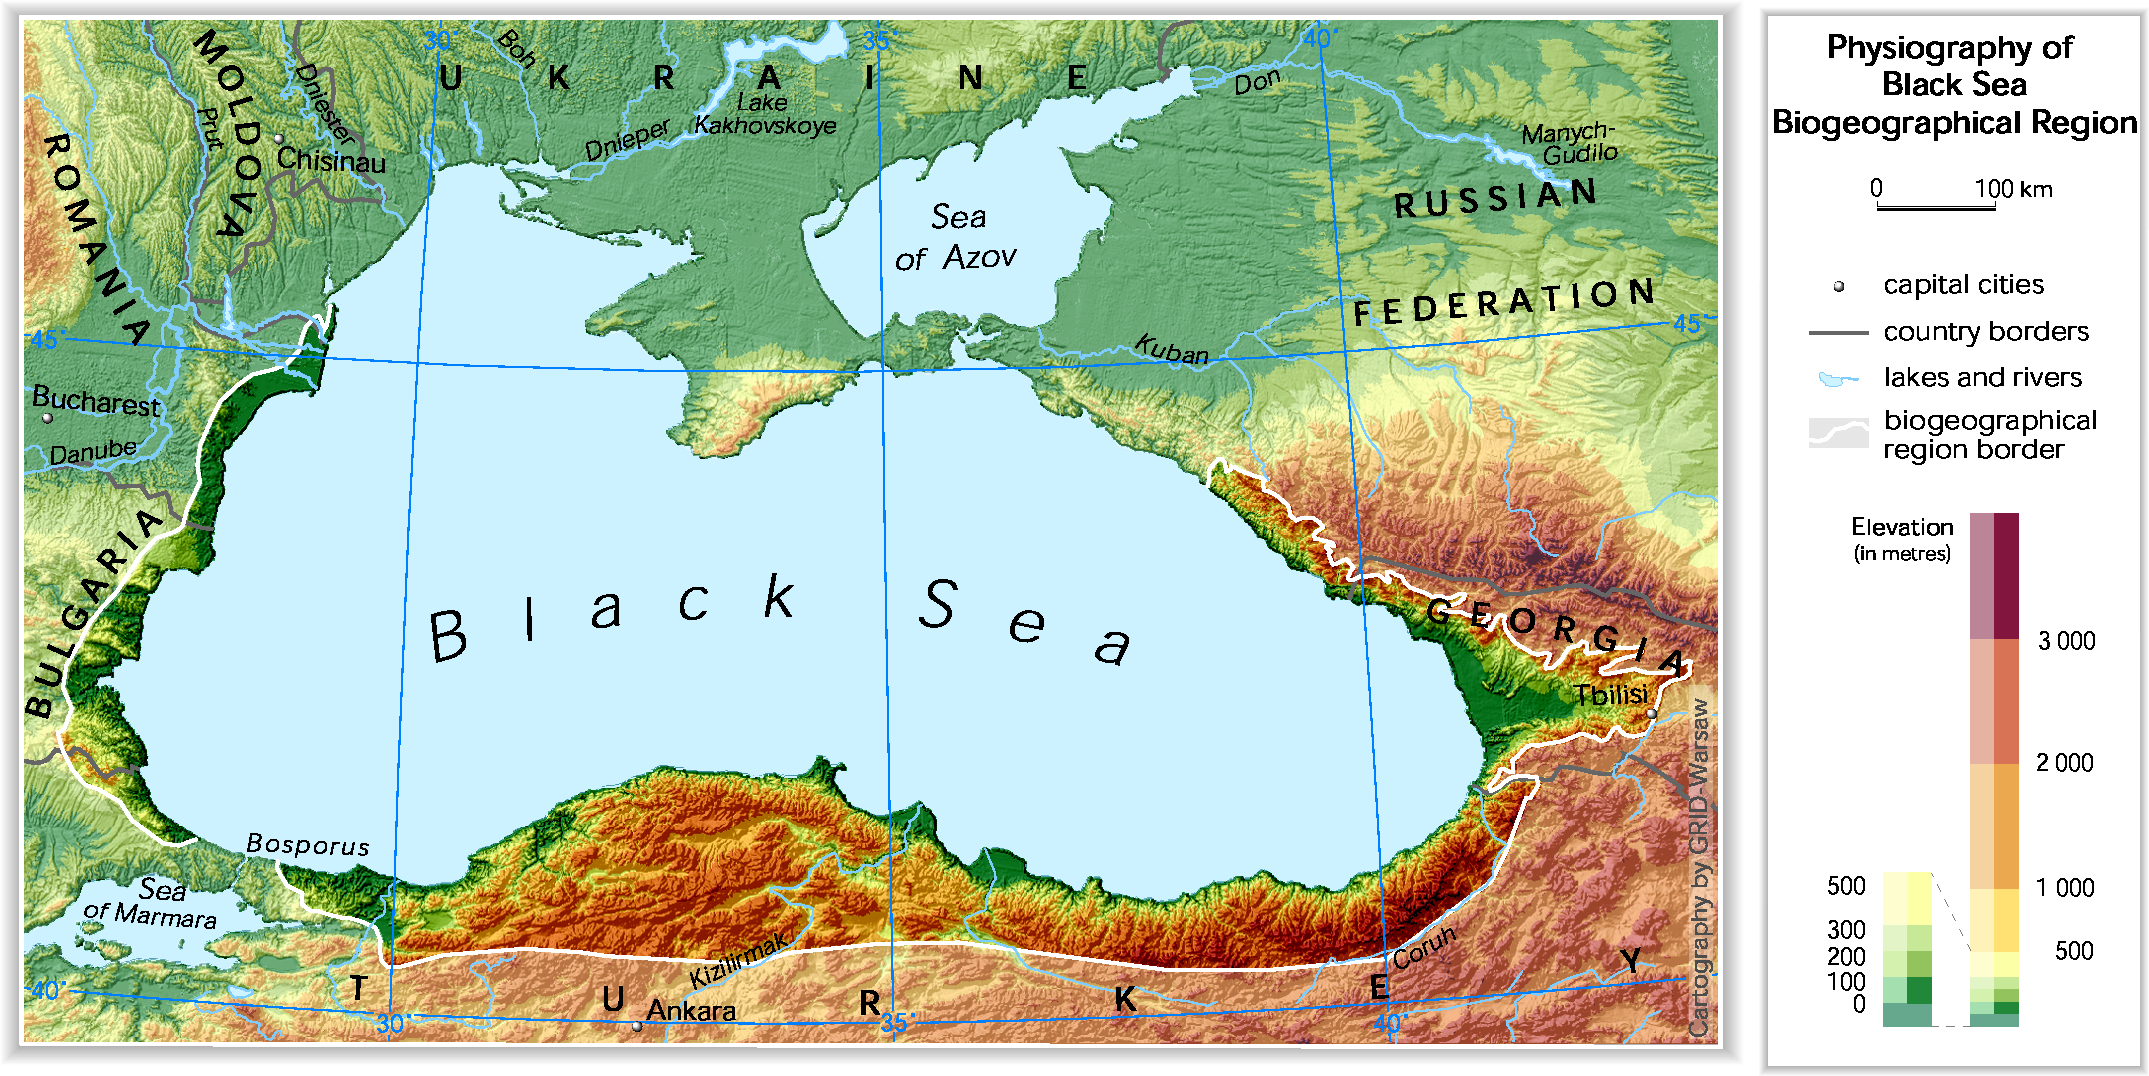 European environment agencys home page european environment agency located in data and maps physiography of black sea biographical region bla1physicaleps gumiabroncs Image collections